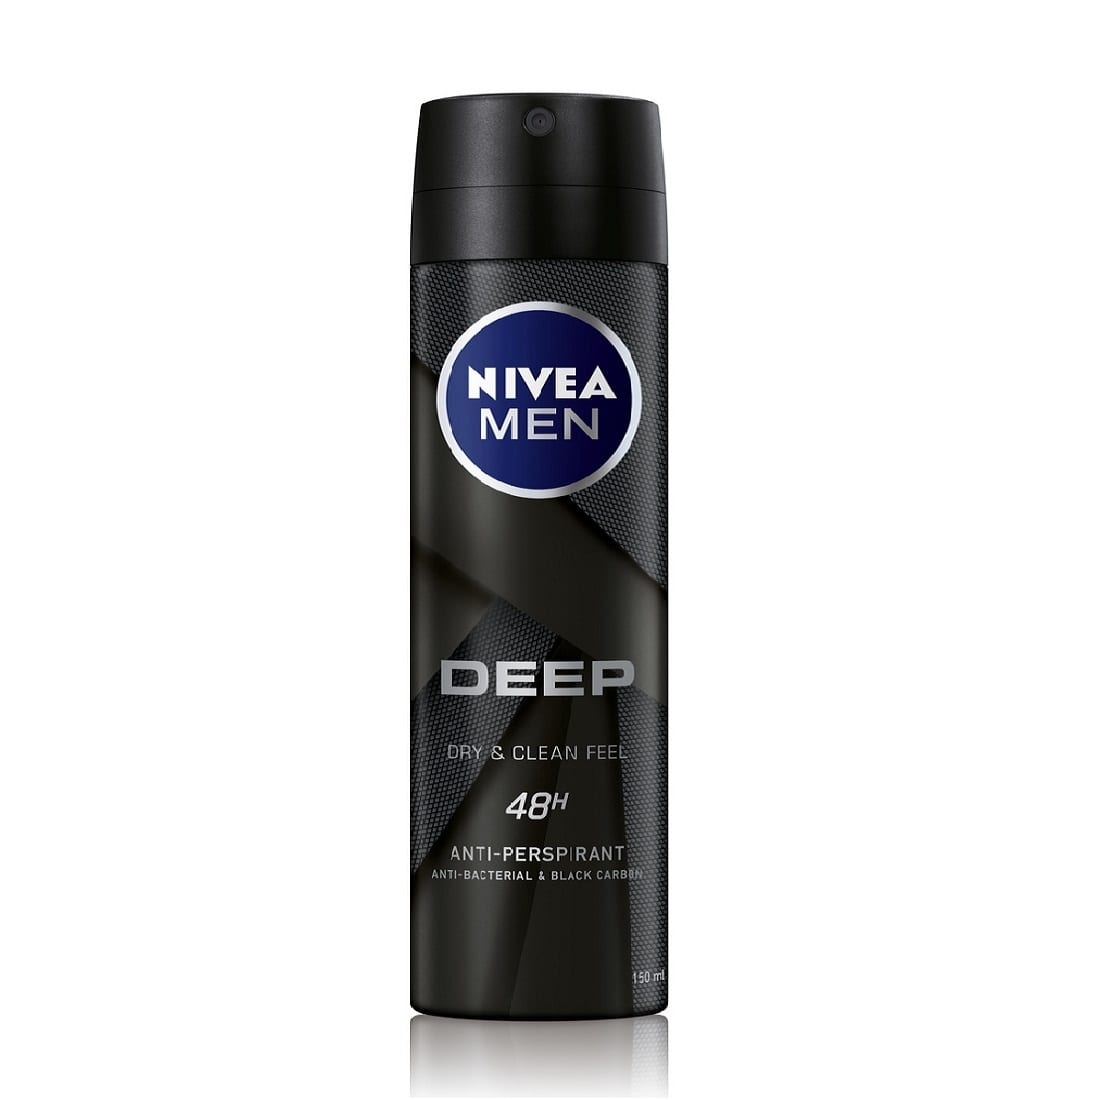 NIVEA MEN DEEP Spray 150ml